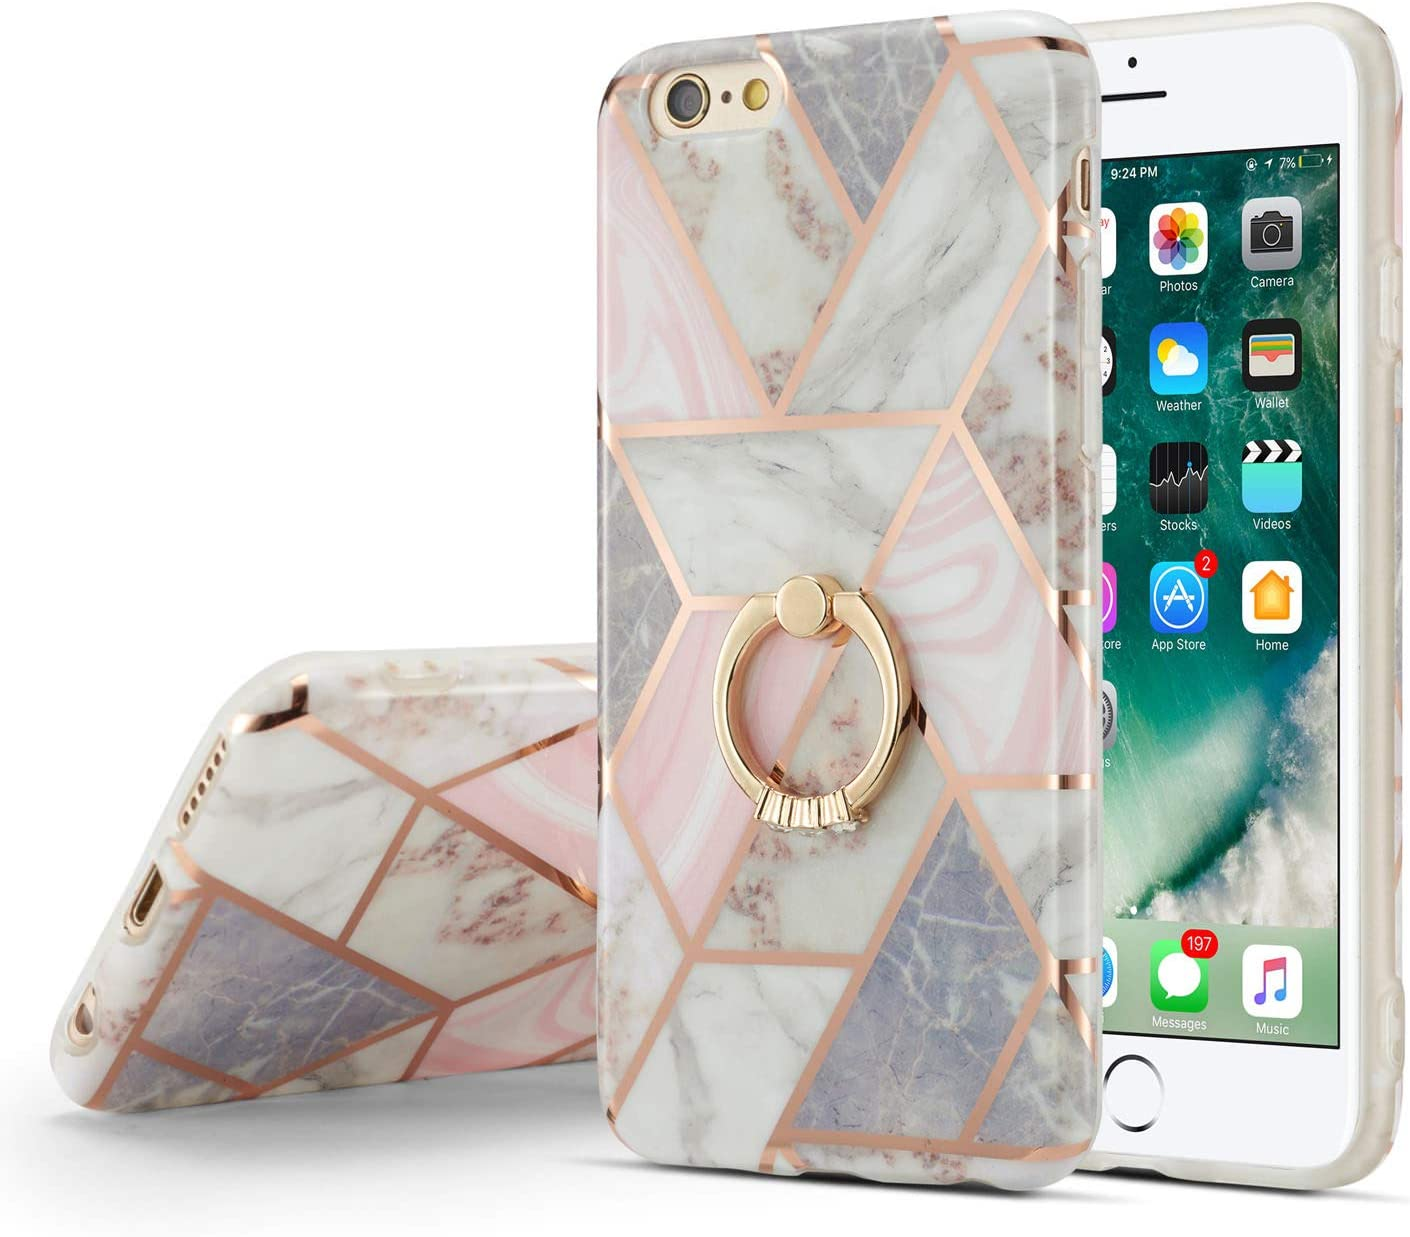 DEFBSC iPhone 6 Plus iPhone 6S Plus Marble Case with Ring Kickstand,Marble Design 360 Degree Rotating Ring Kickstand Soft TPU Shockproof Case Cover for iPhone 6 Plus/6S Plus 5.5 Inch (Marble)